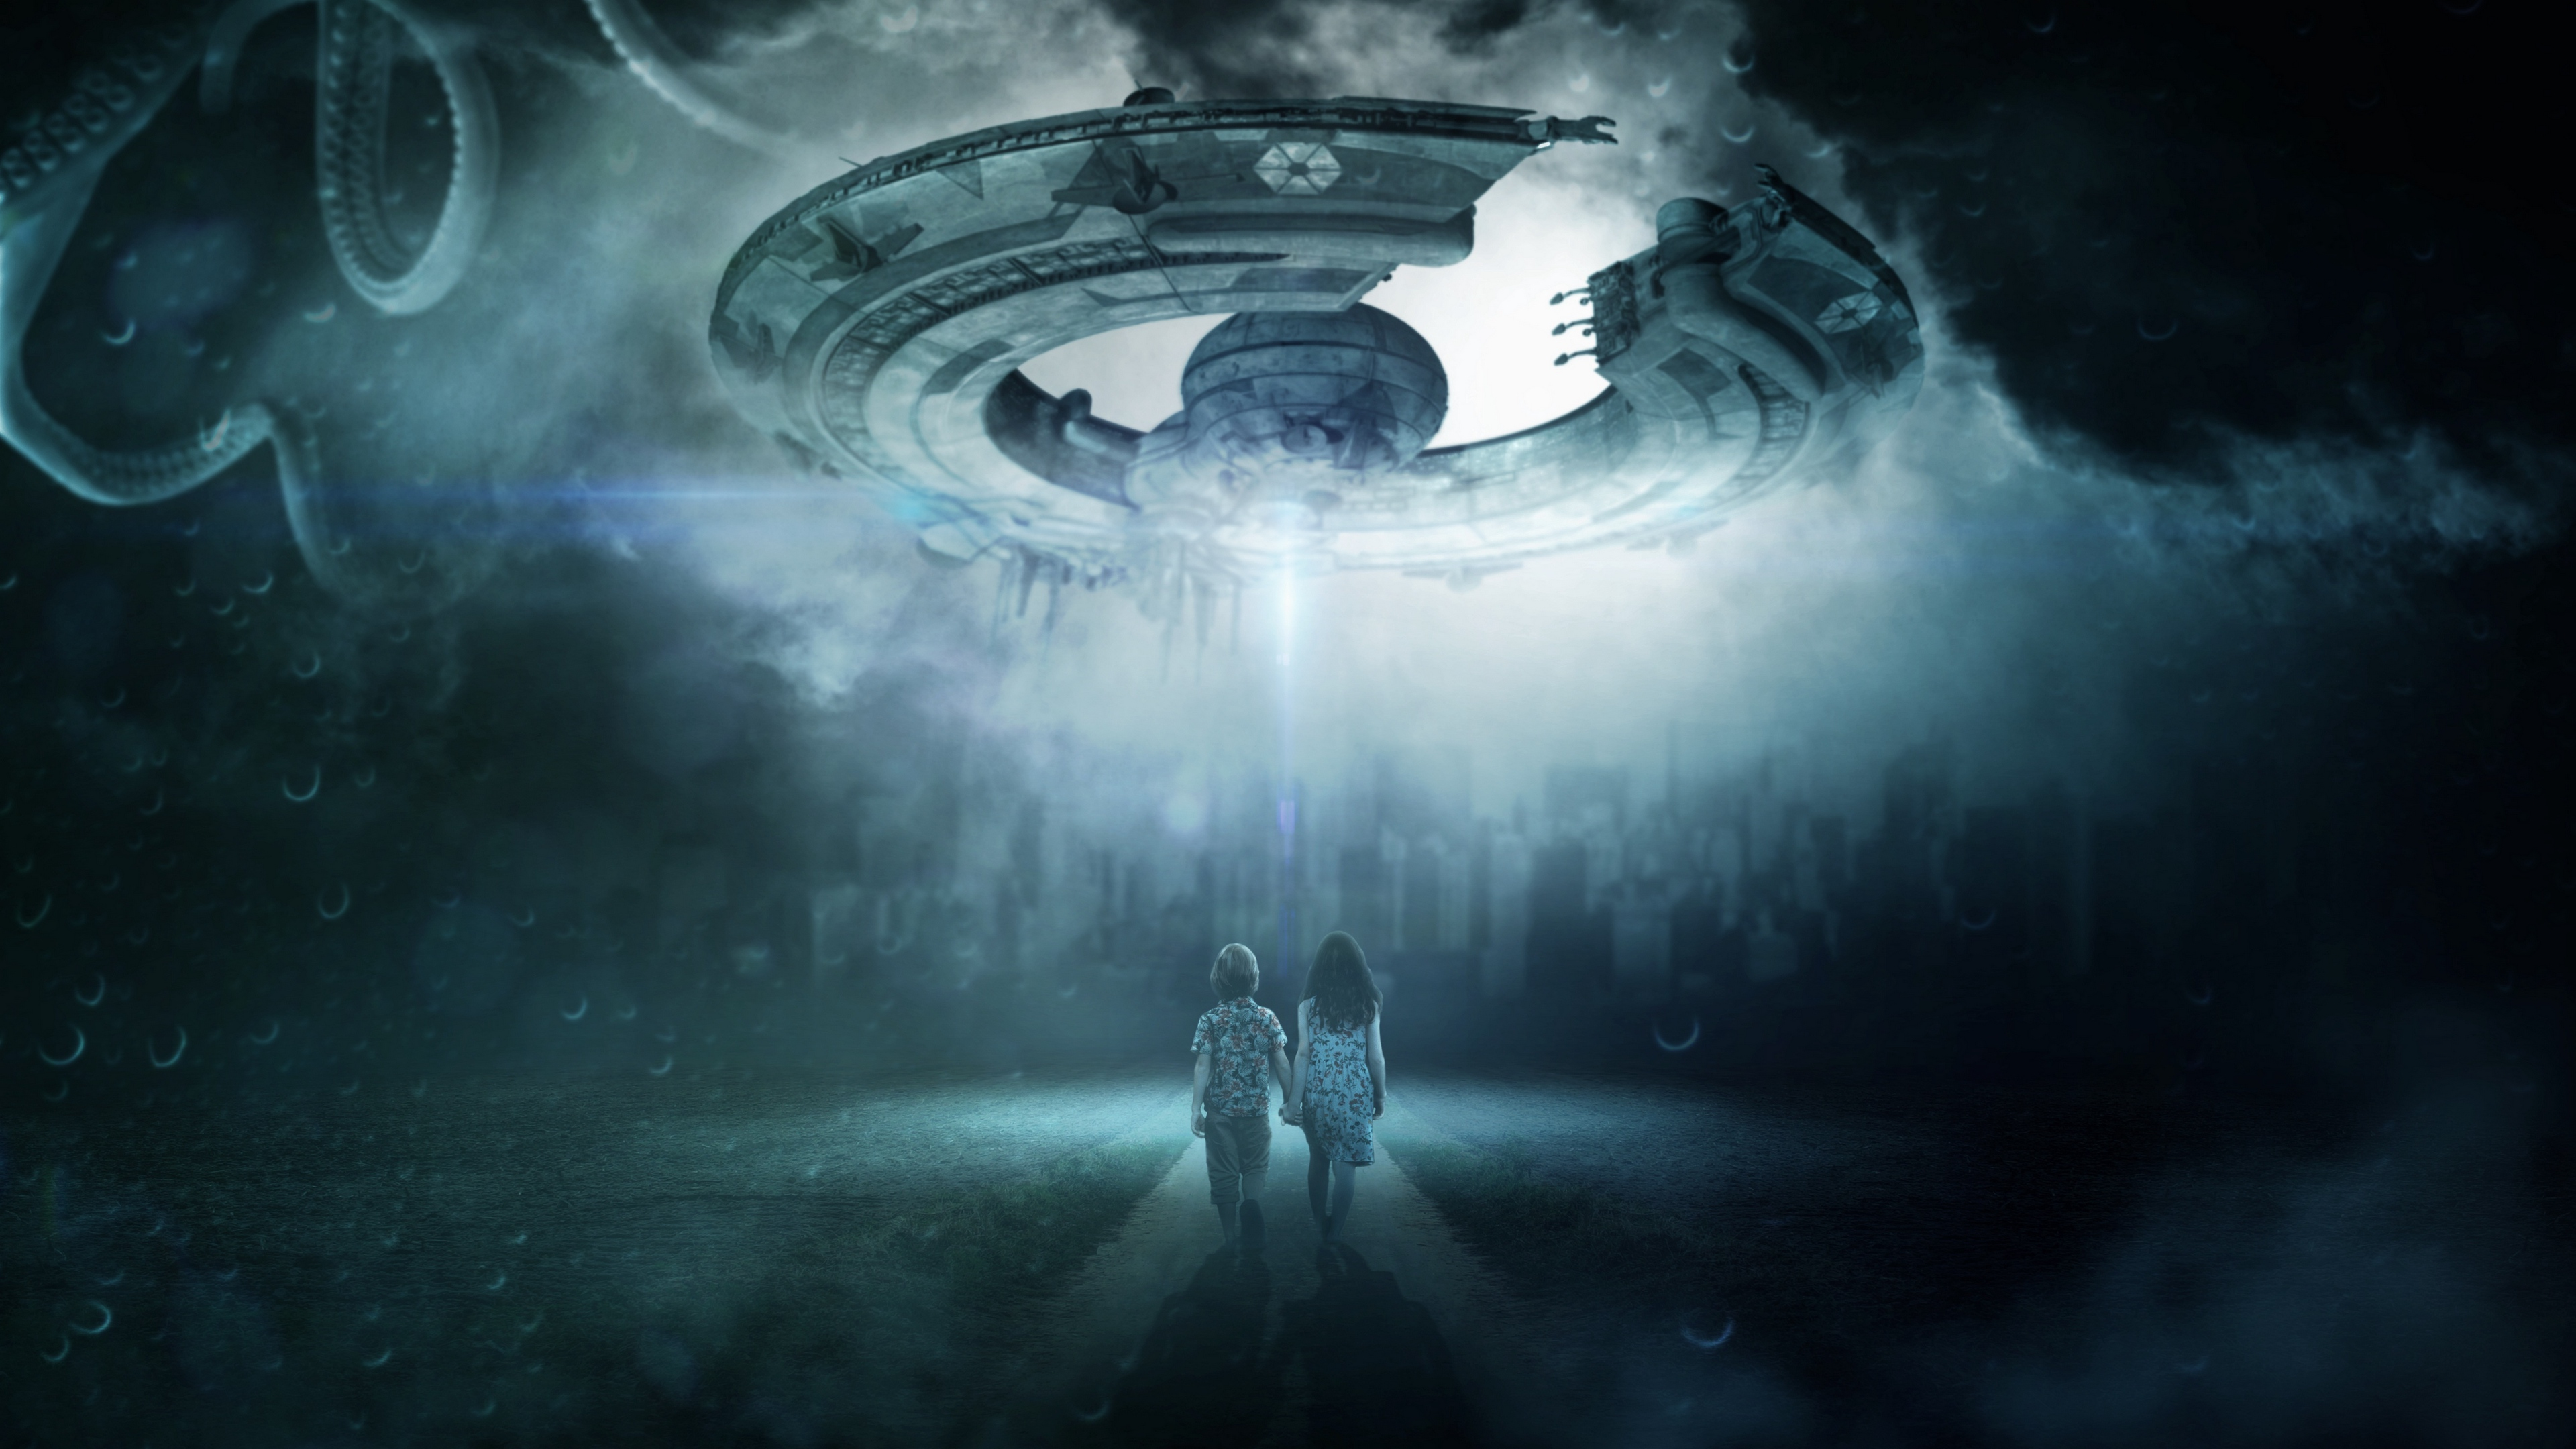 ufo children space ship photoshop futuristic 4k 1536016901 - ufo, children, space ship, photoshop, futuristic 4k - UFO, space ship, Children